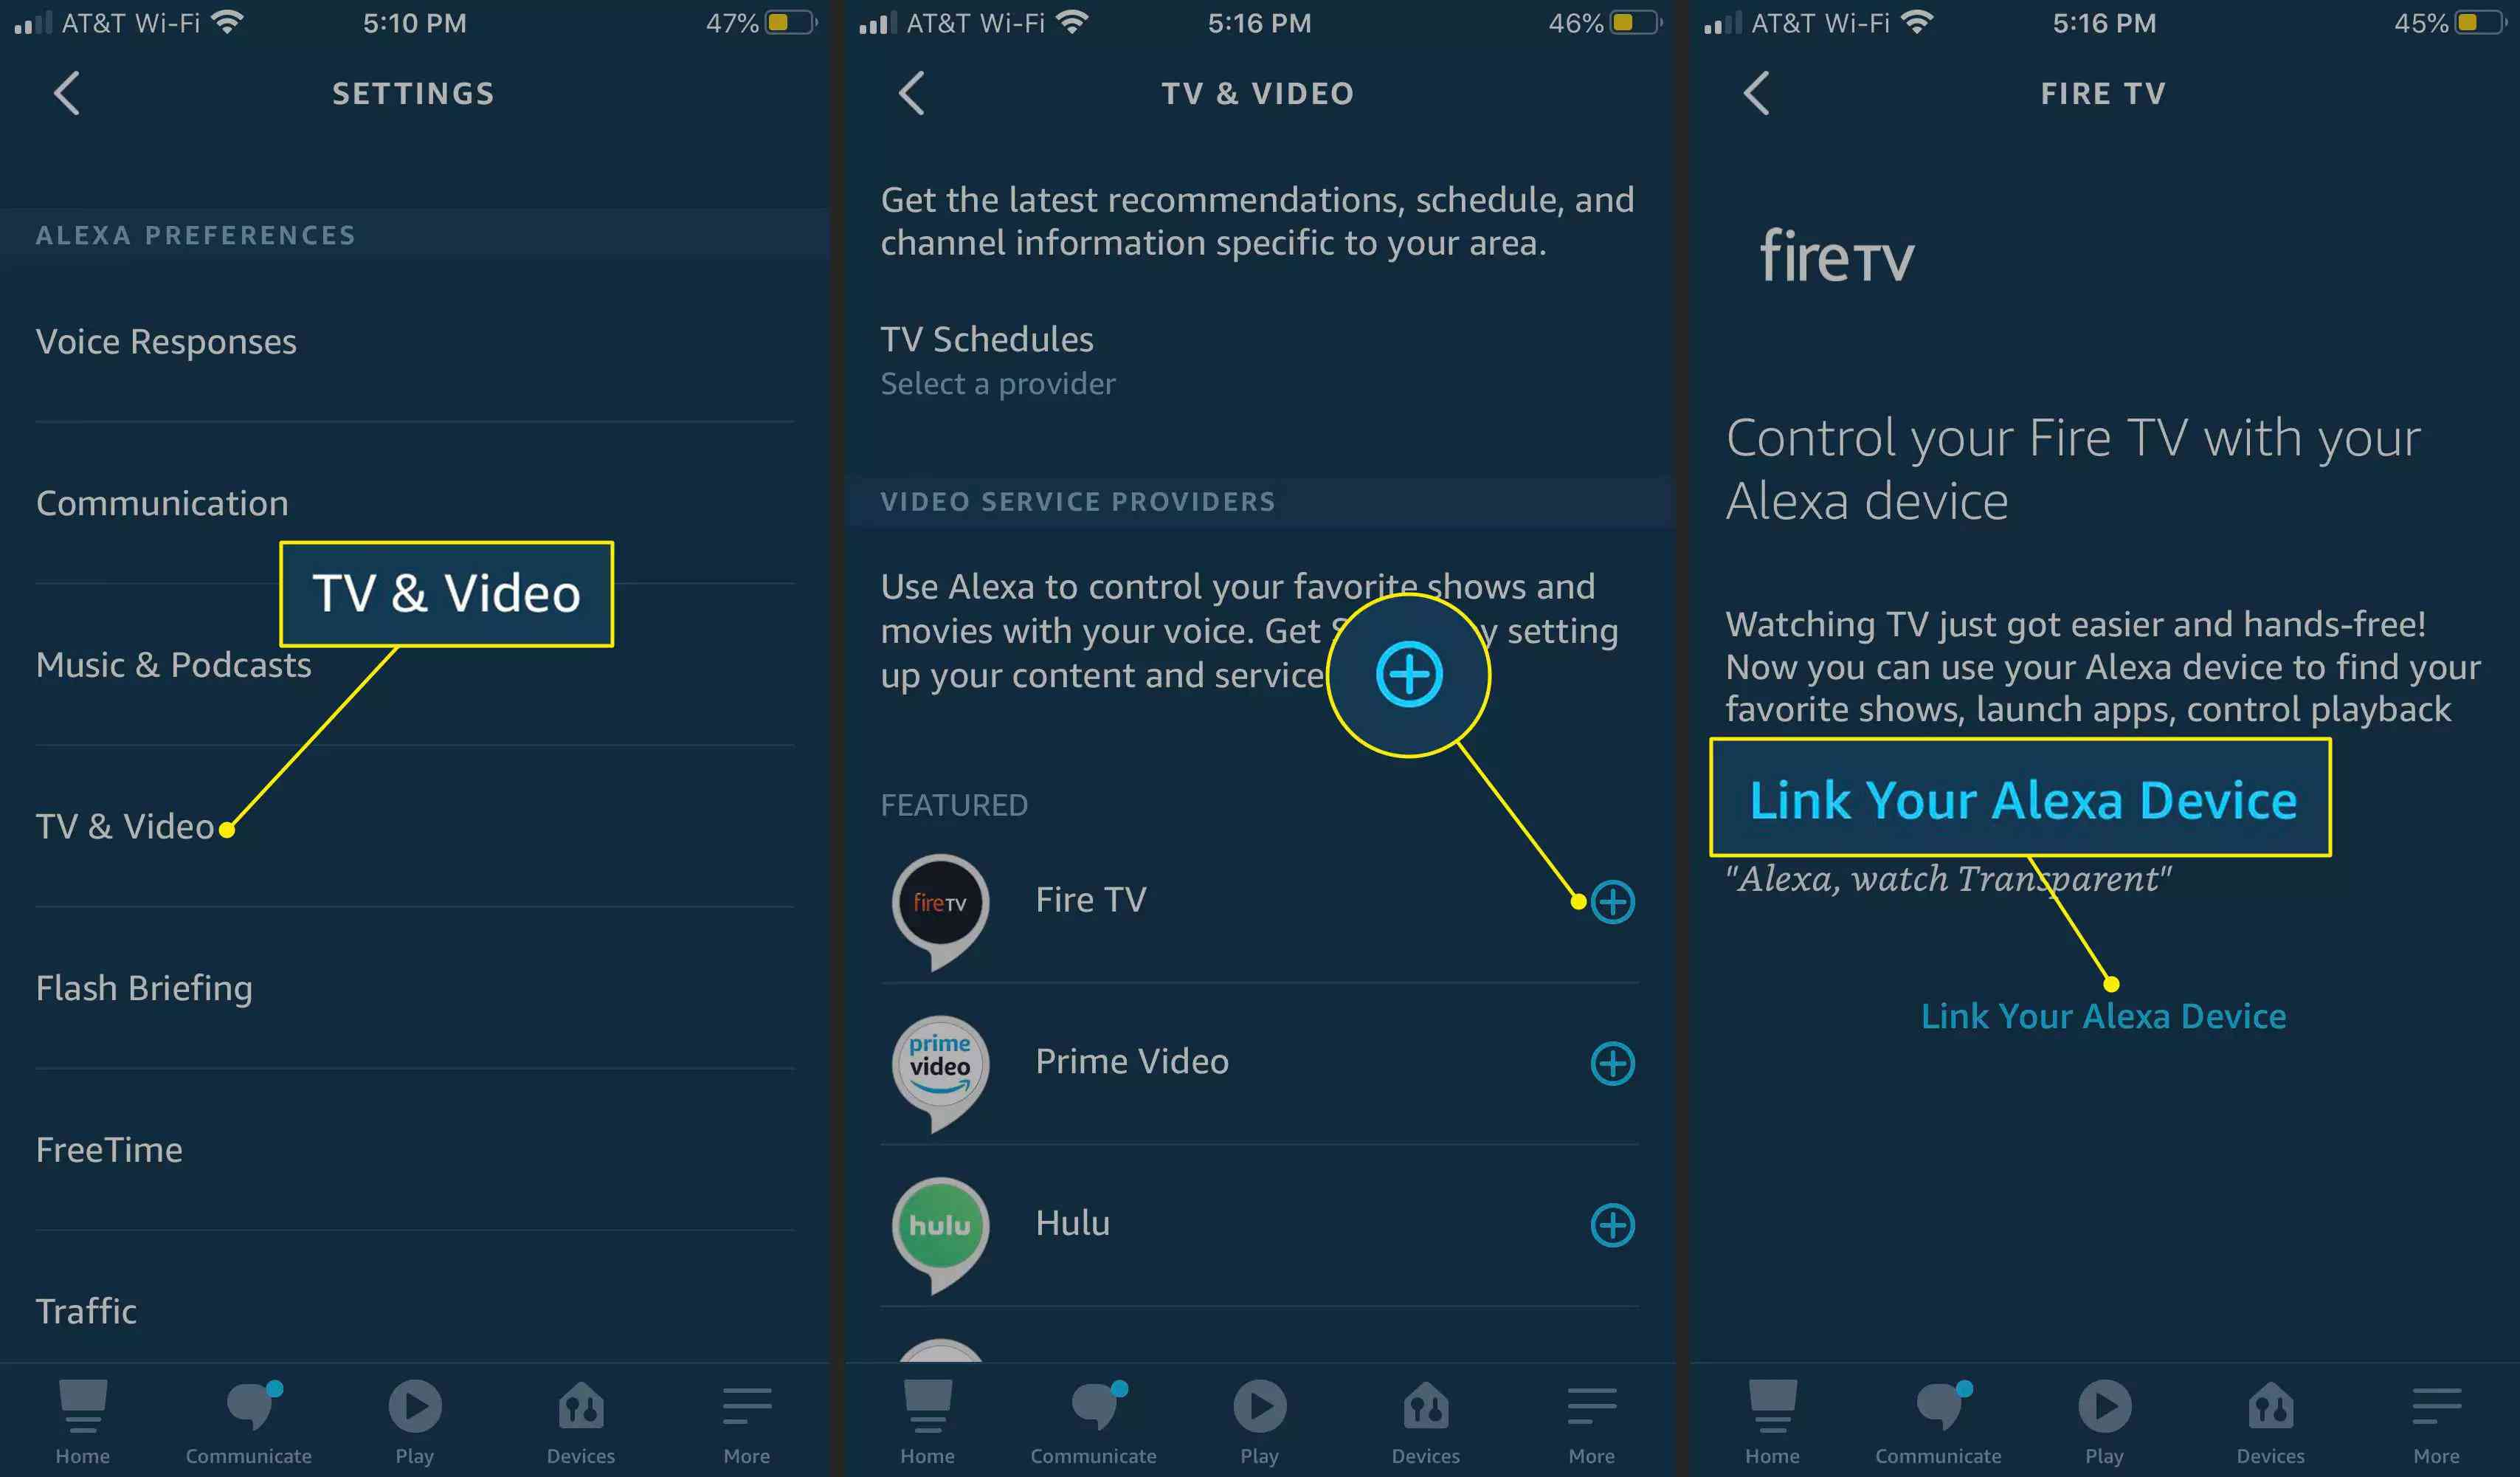 TV & Video, Plus, and Link Your Alexa Device highlighted in the Alexa app